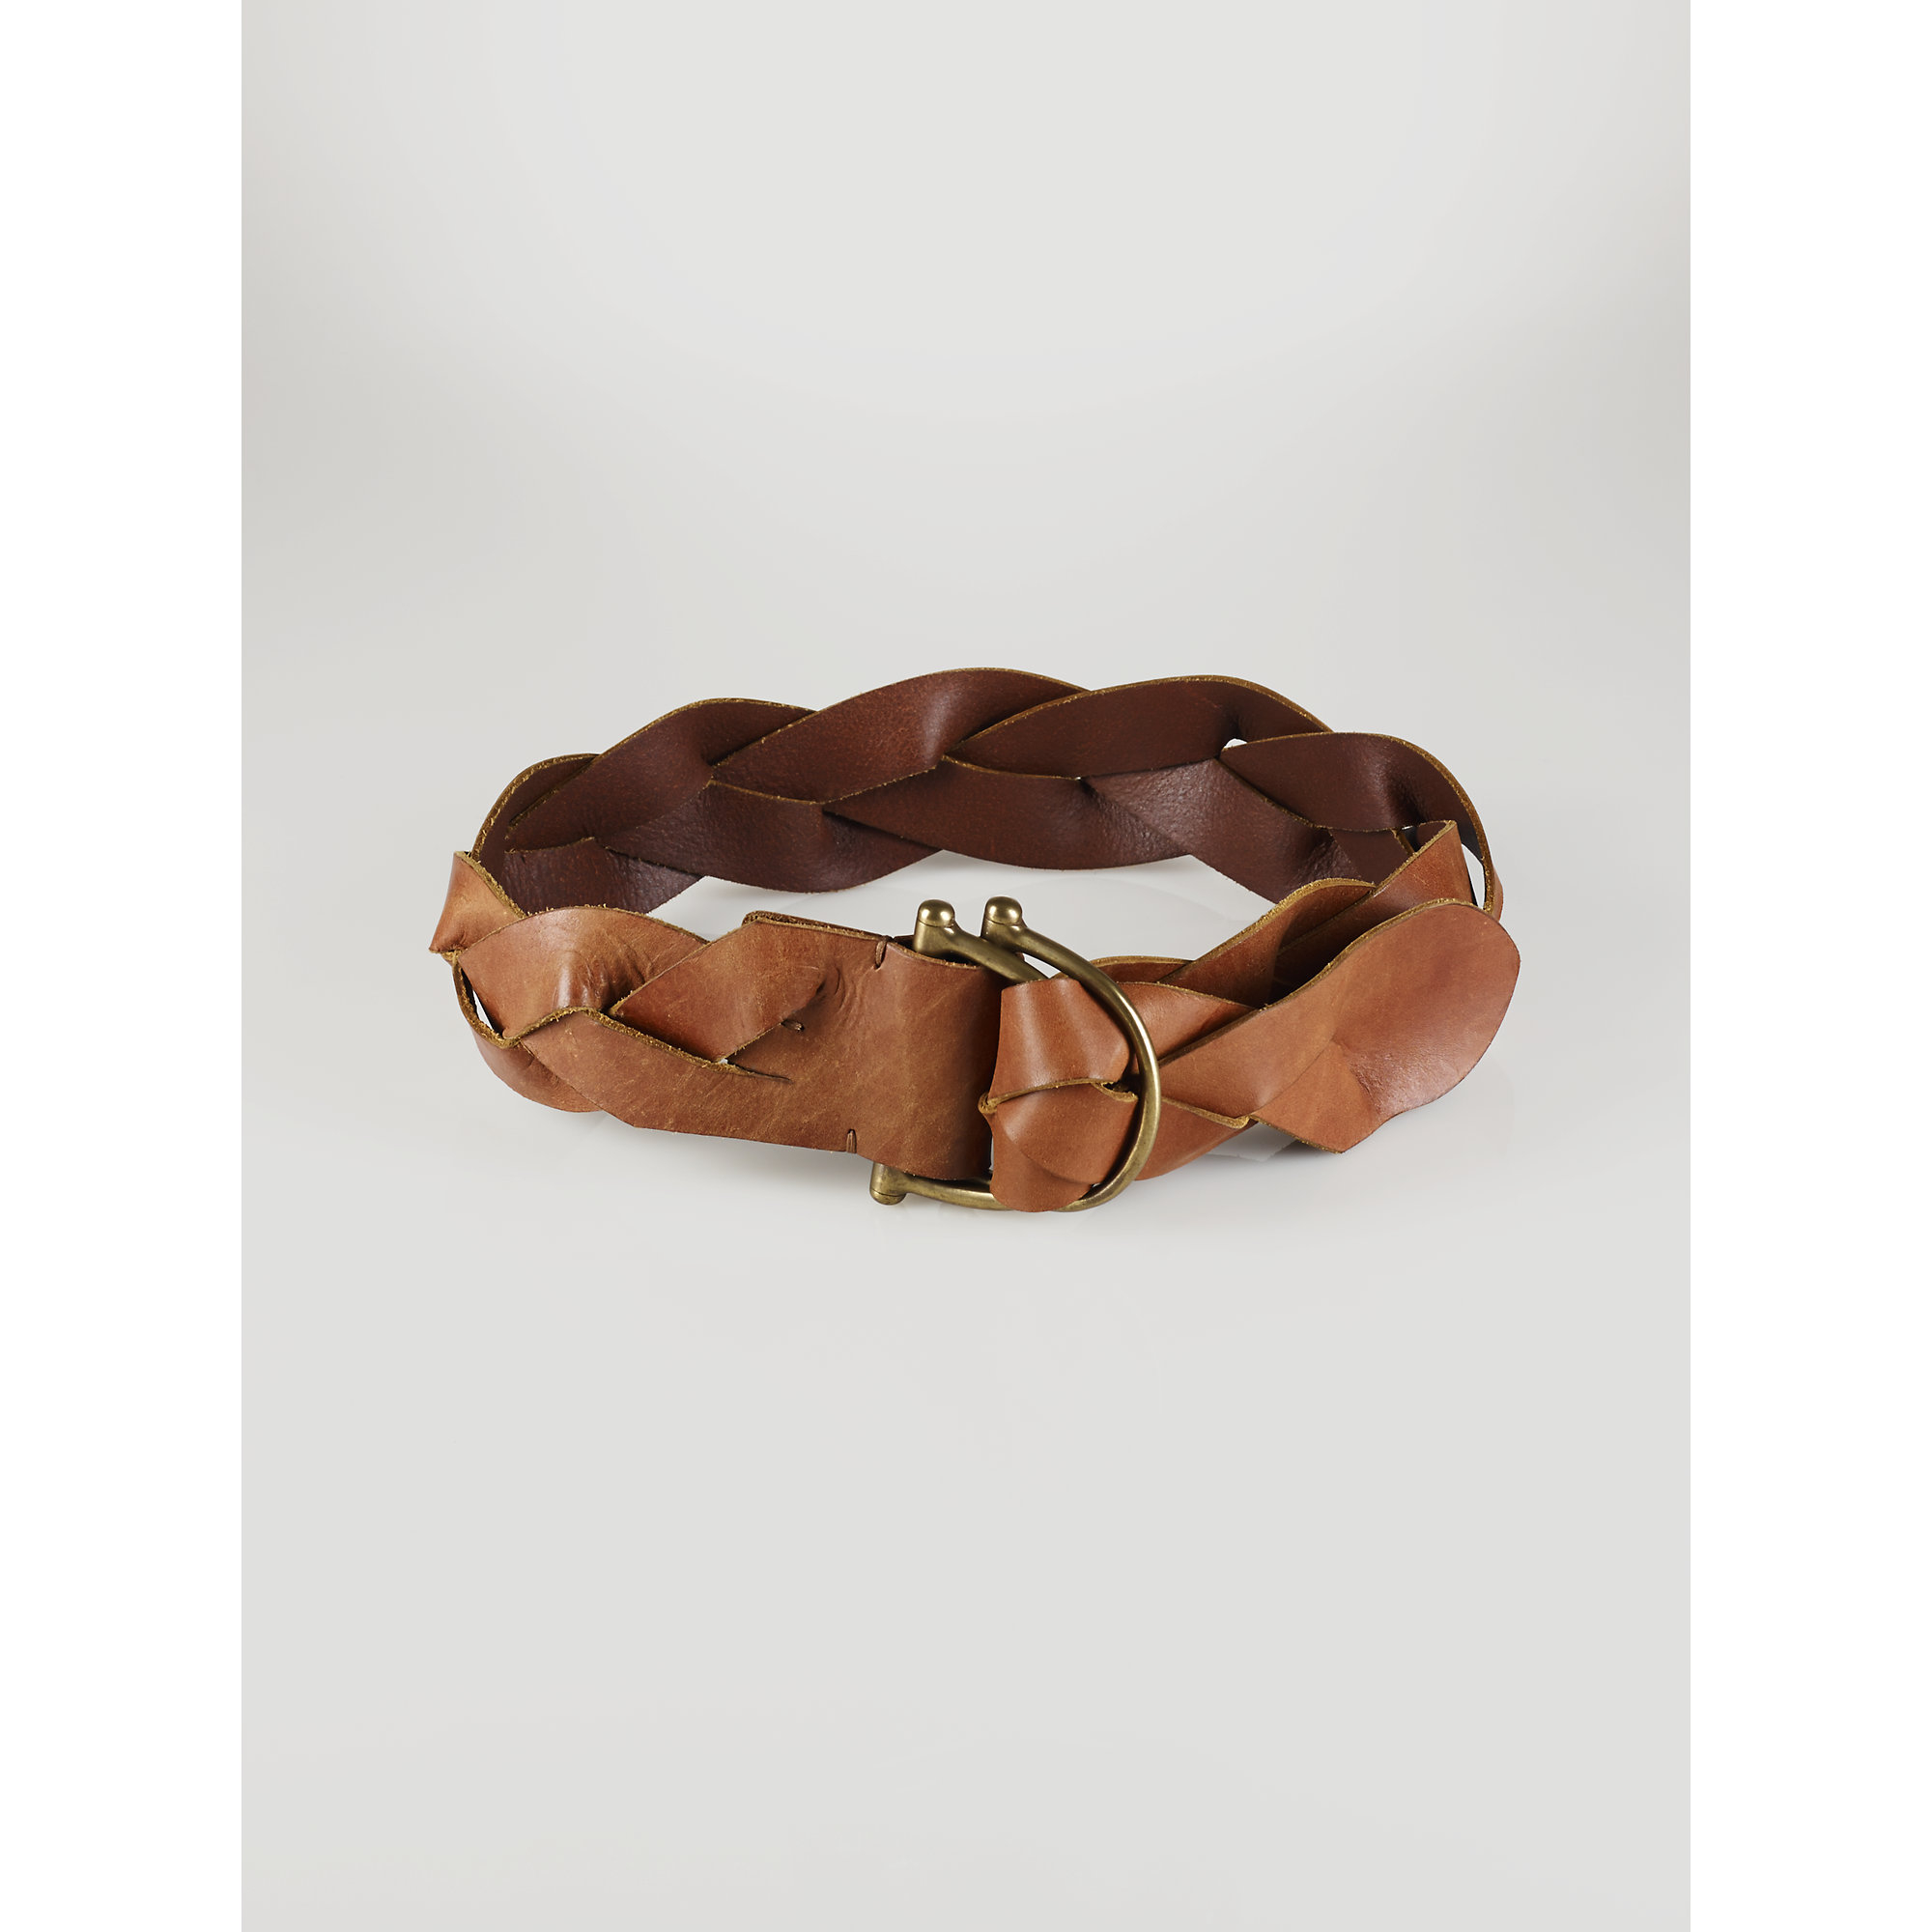 Lyst - Polo Ralph Lauren Wide Woven-Leather Belt in Brown a8ef1ded6a